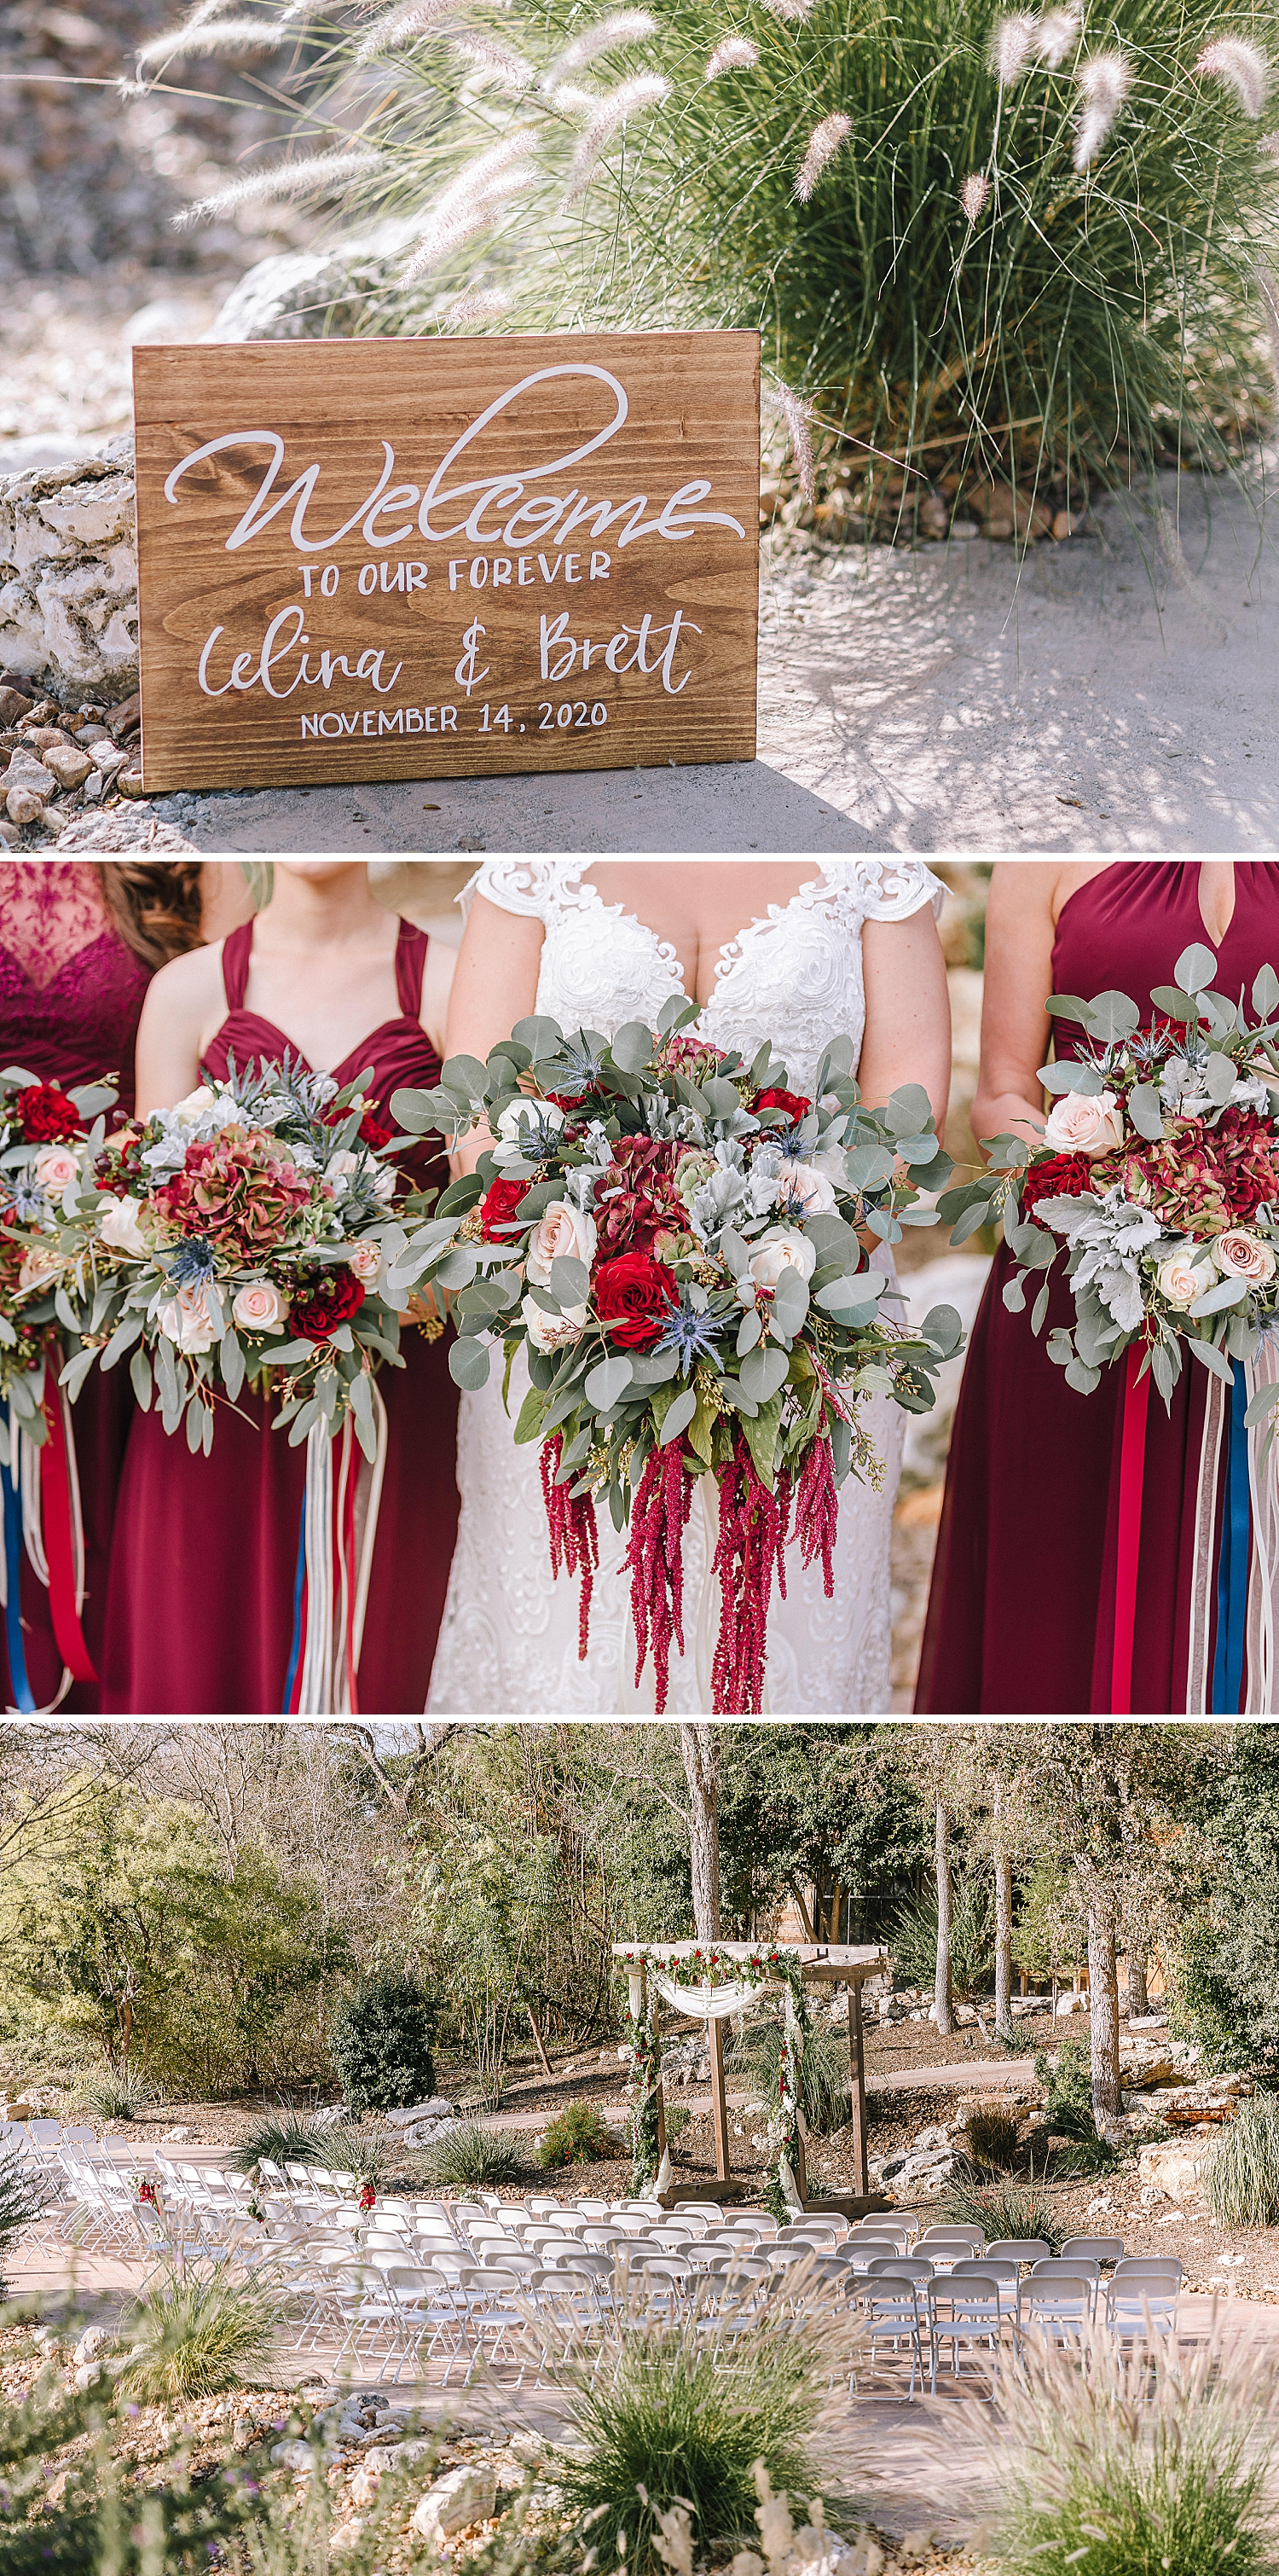 Geronimo-Oaks-Wedding-Venue-Seguin-Texas-Elegant-Navy-Burgundy-Wedding-Carly-Barton-Photography_0001.jpg